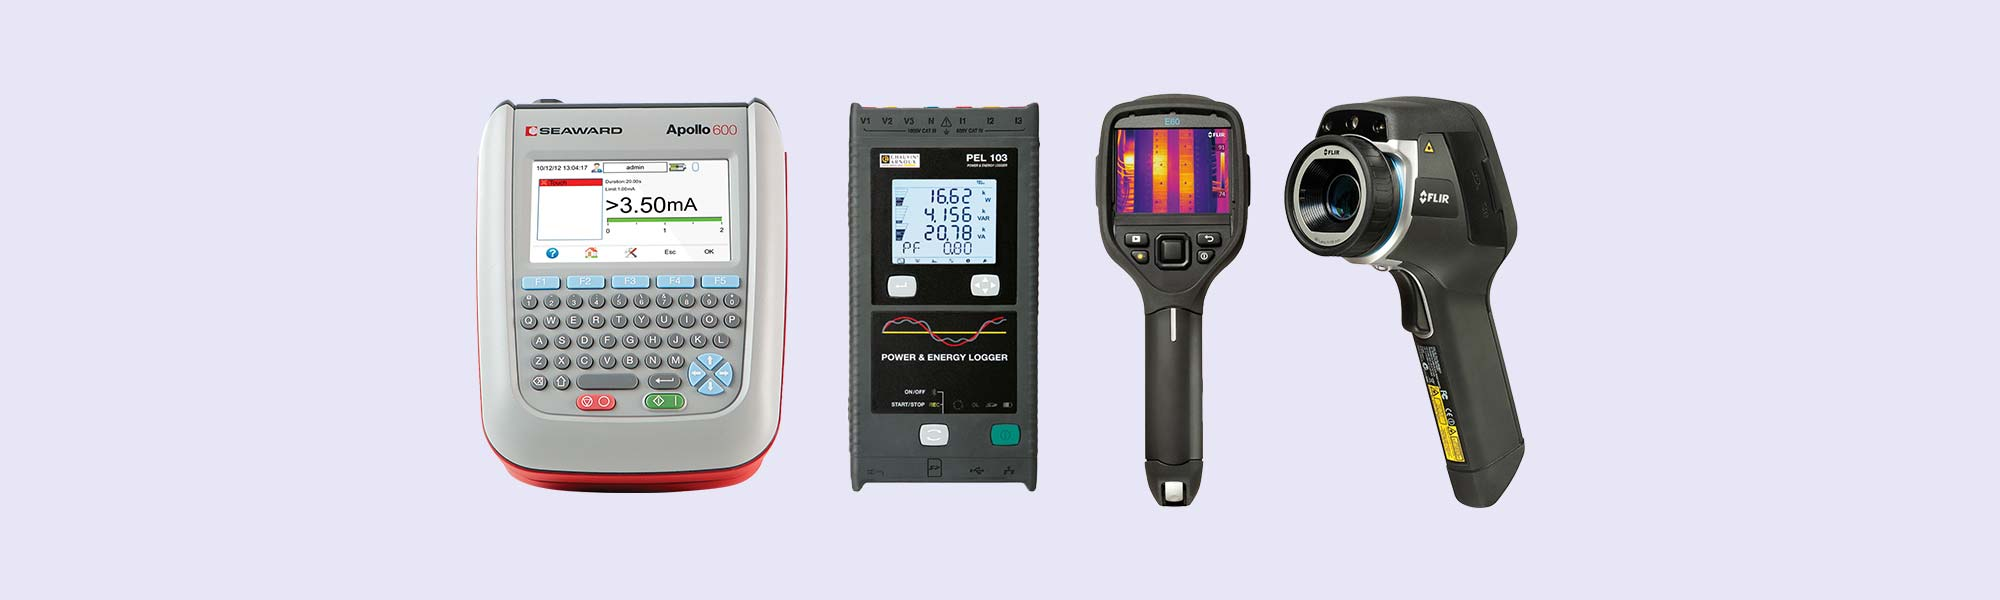 Test Equipment Hire